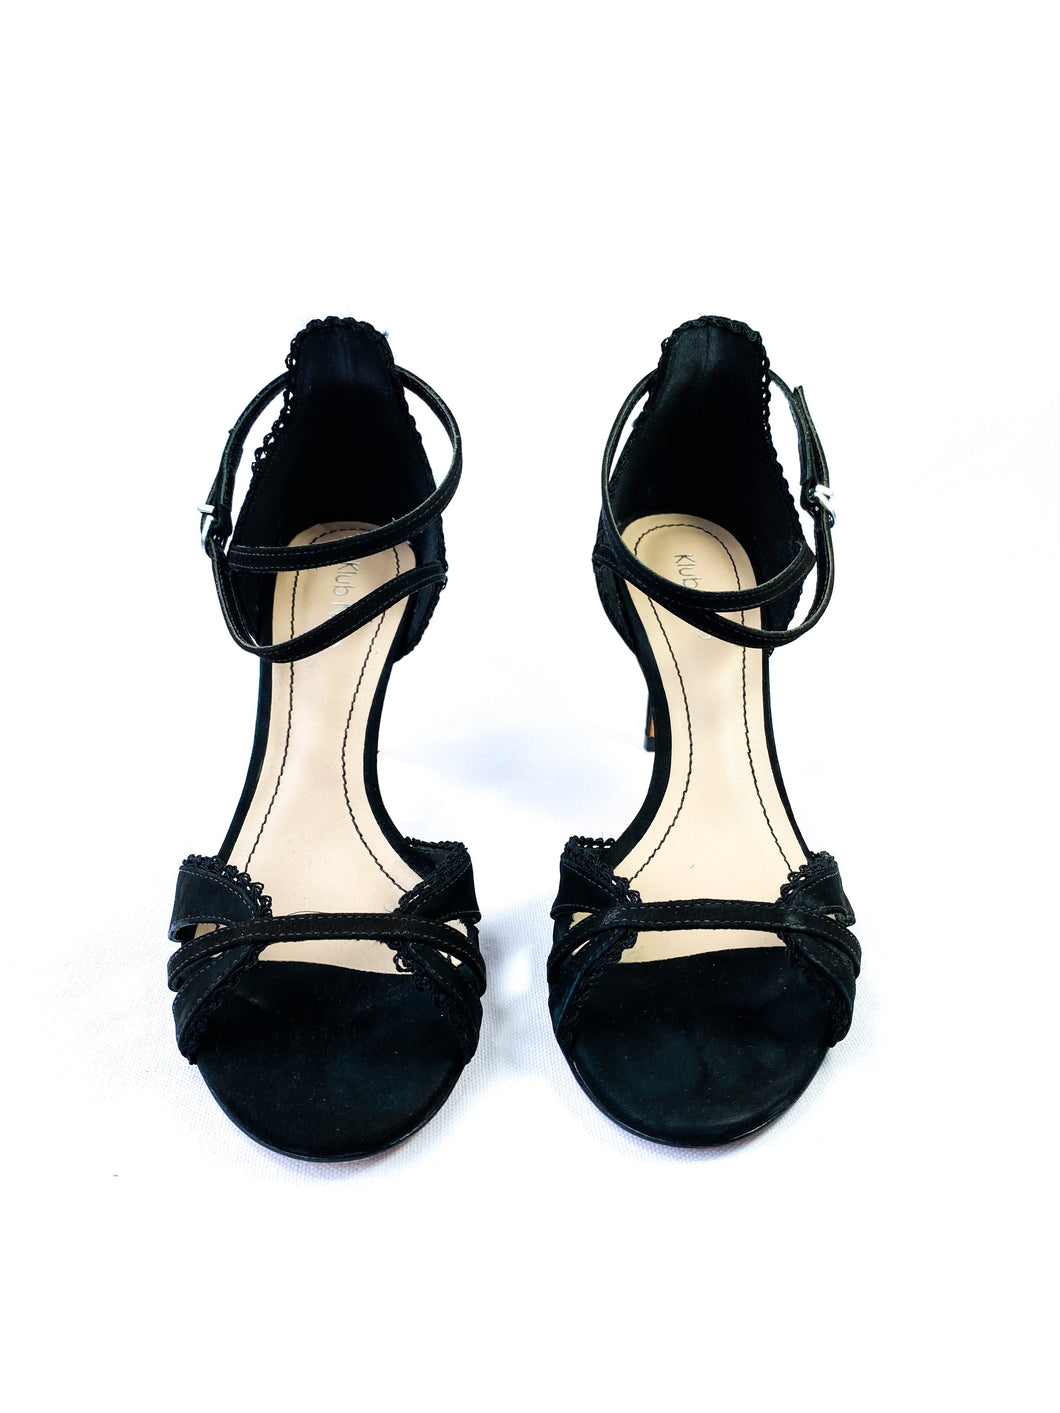 Klub Nico black strappy pumps NEW - My Girlfriend's Wardrobe York Pa